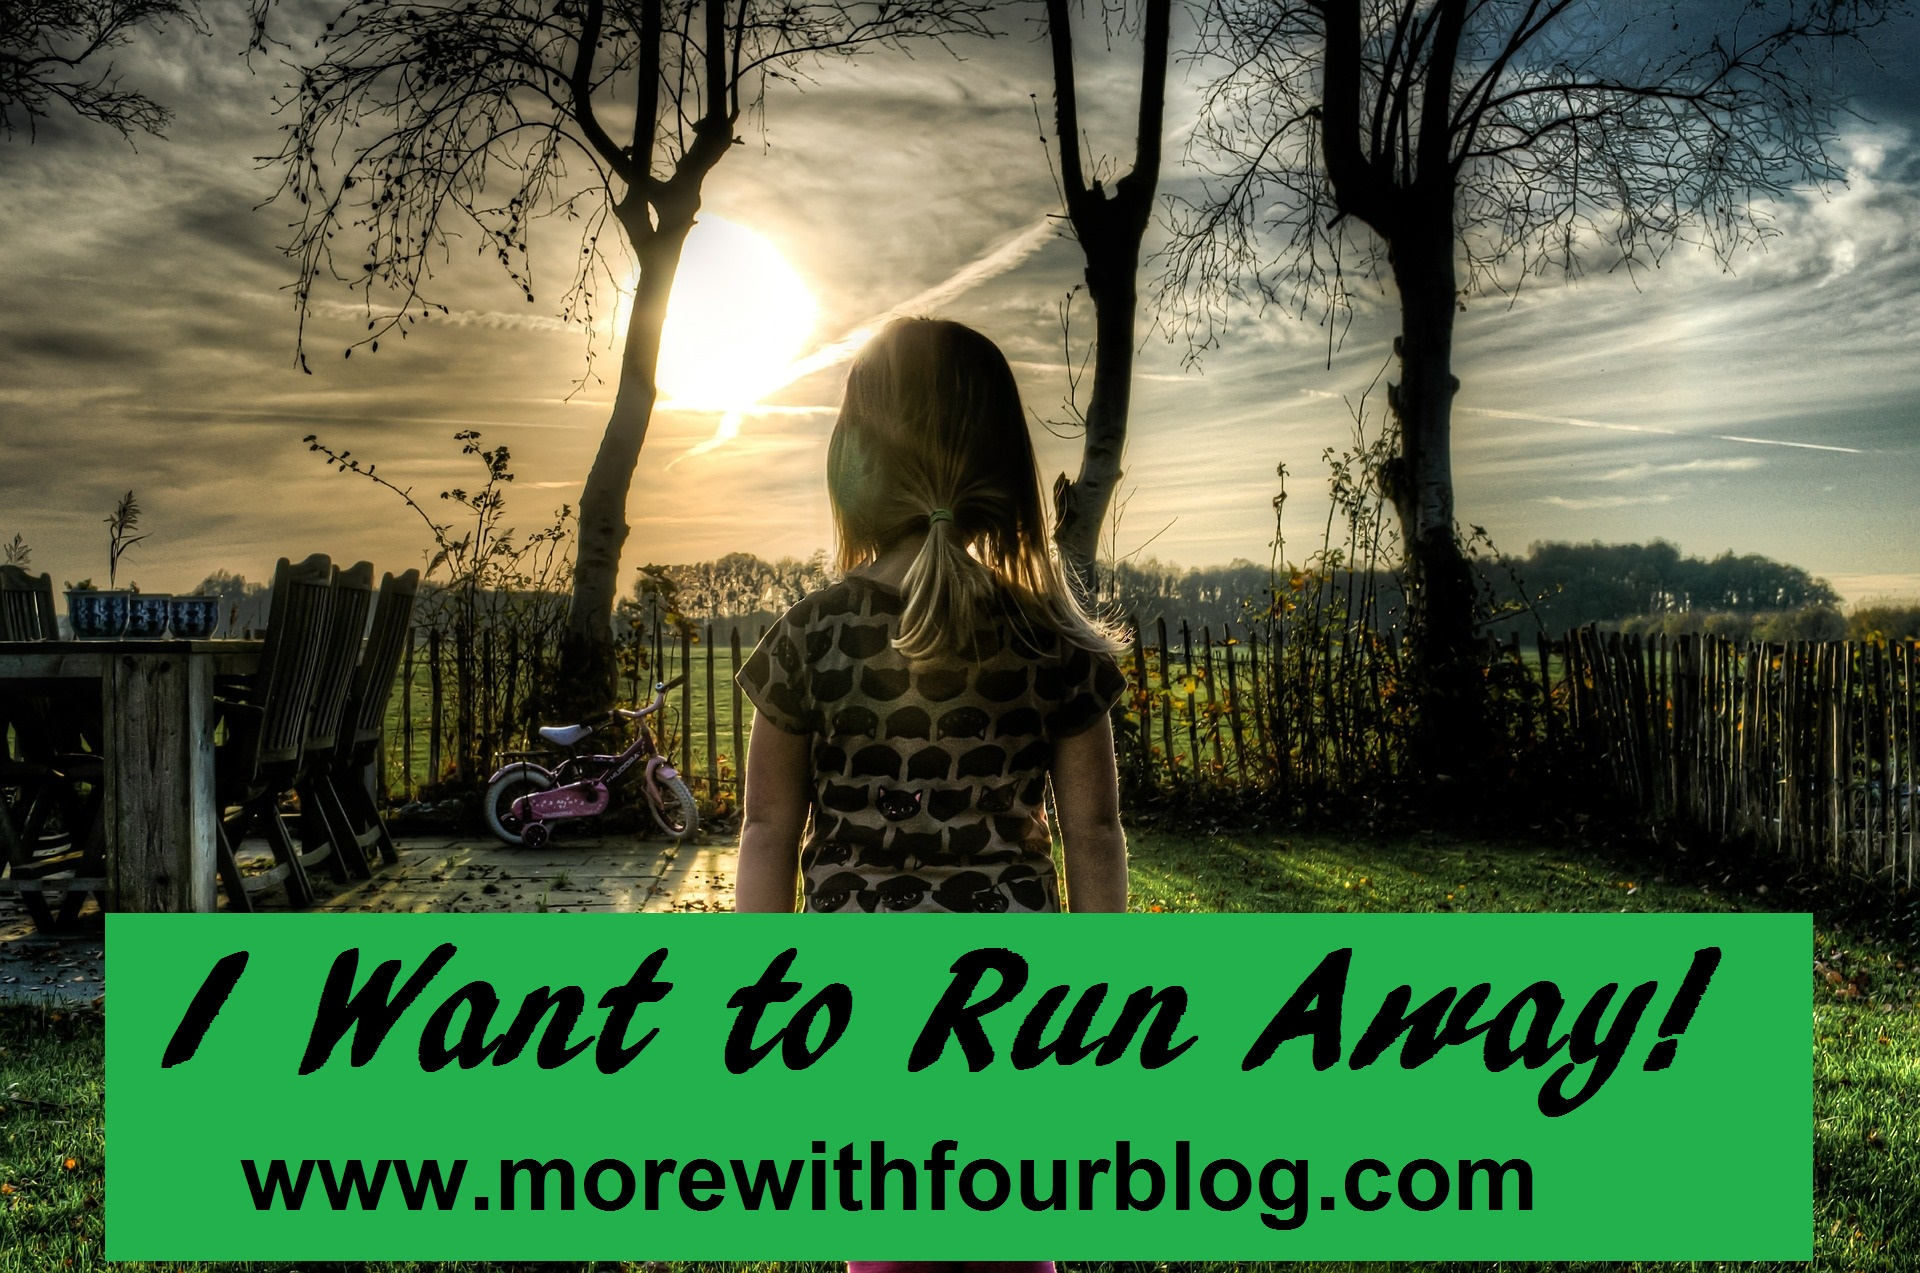 I Want to Run Away! – More With Four Blog